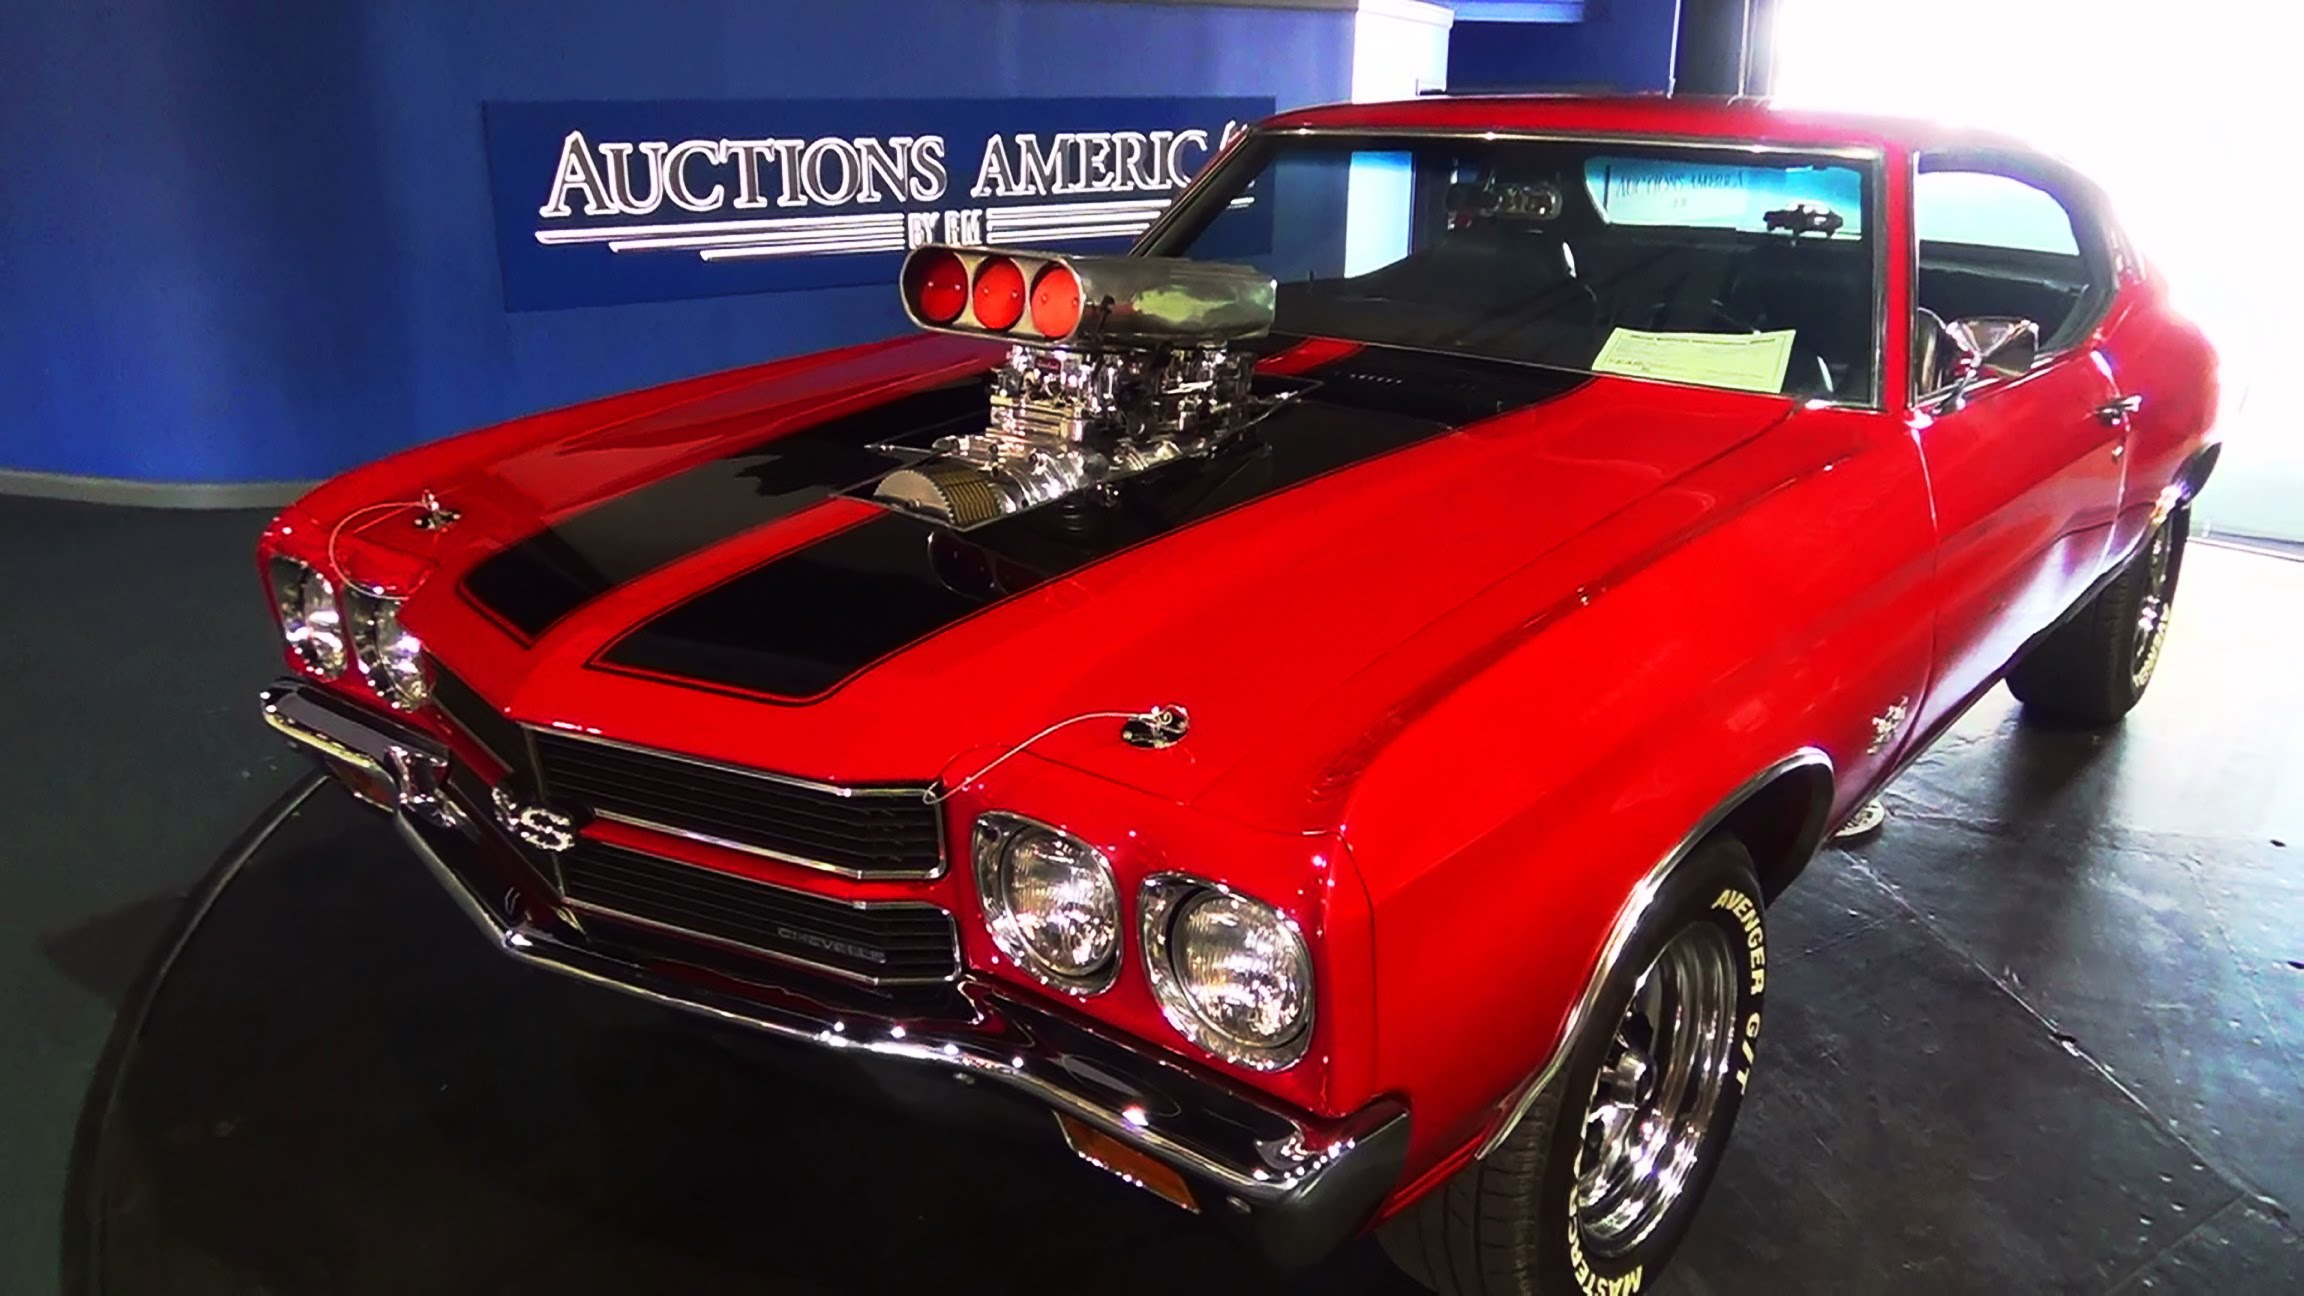 ScottieDTv\'s Amazing Restored Red 1970 Chevy Chevelle SS!